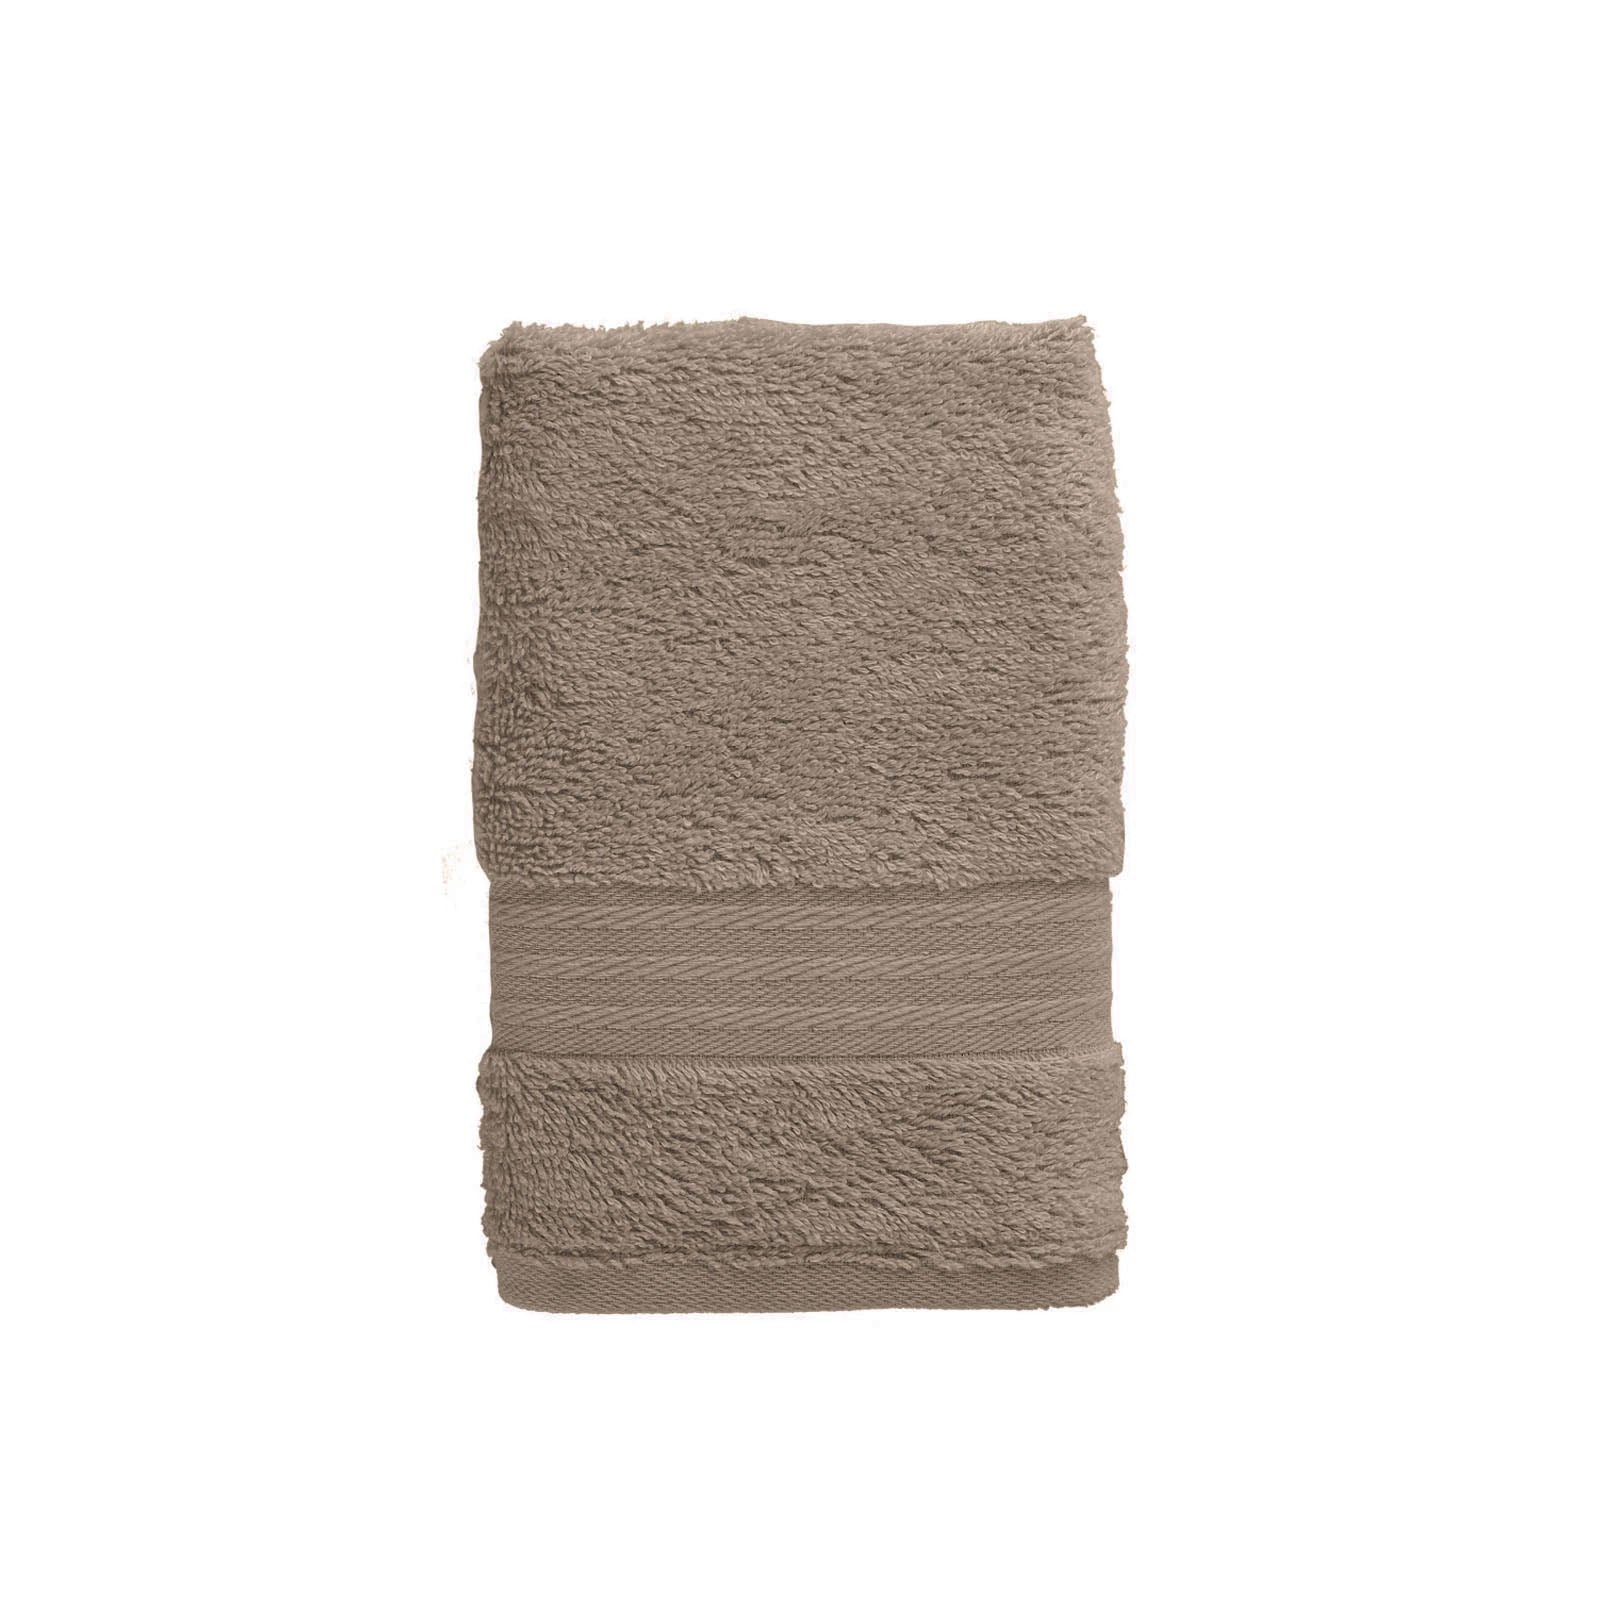 30X50 PURE SOFT  towel 200.05.01.0235 - ebarza